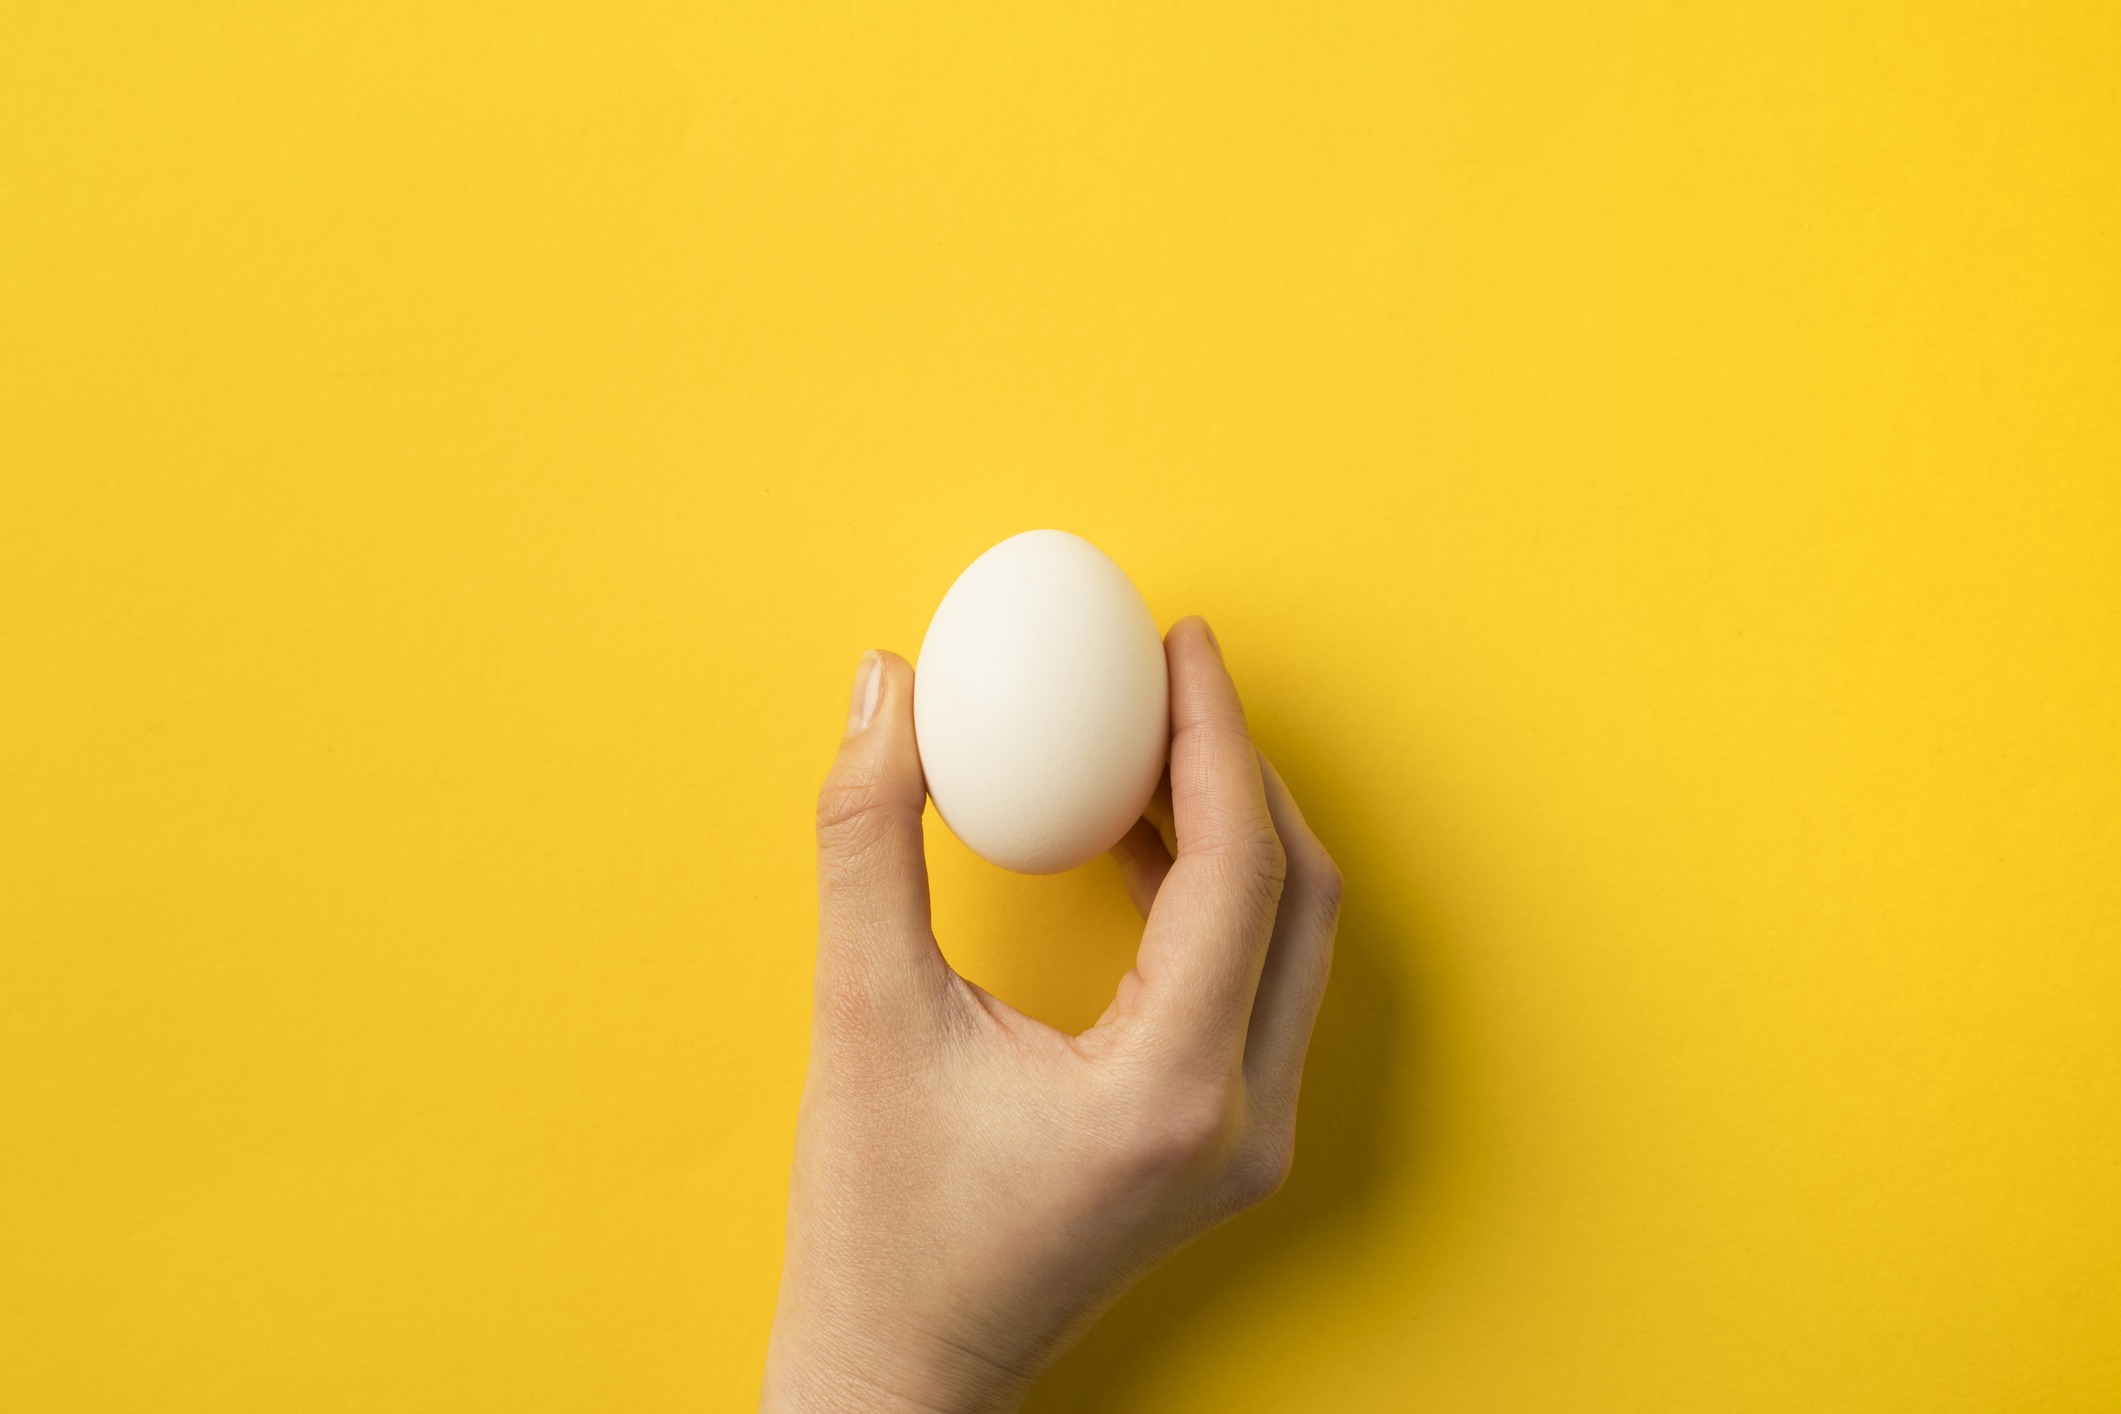 This bizarre egg video is going viral on Twitter, and we have so many questions